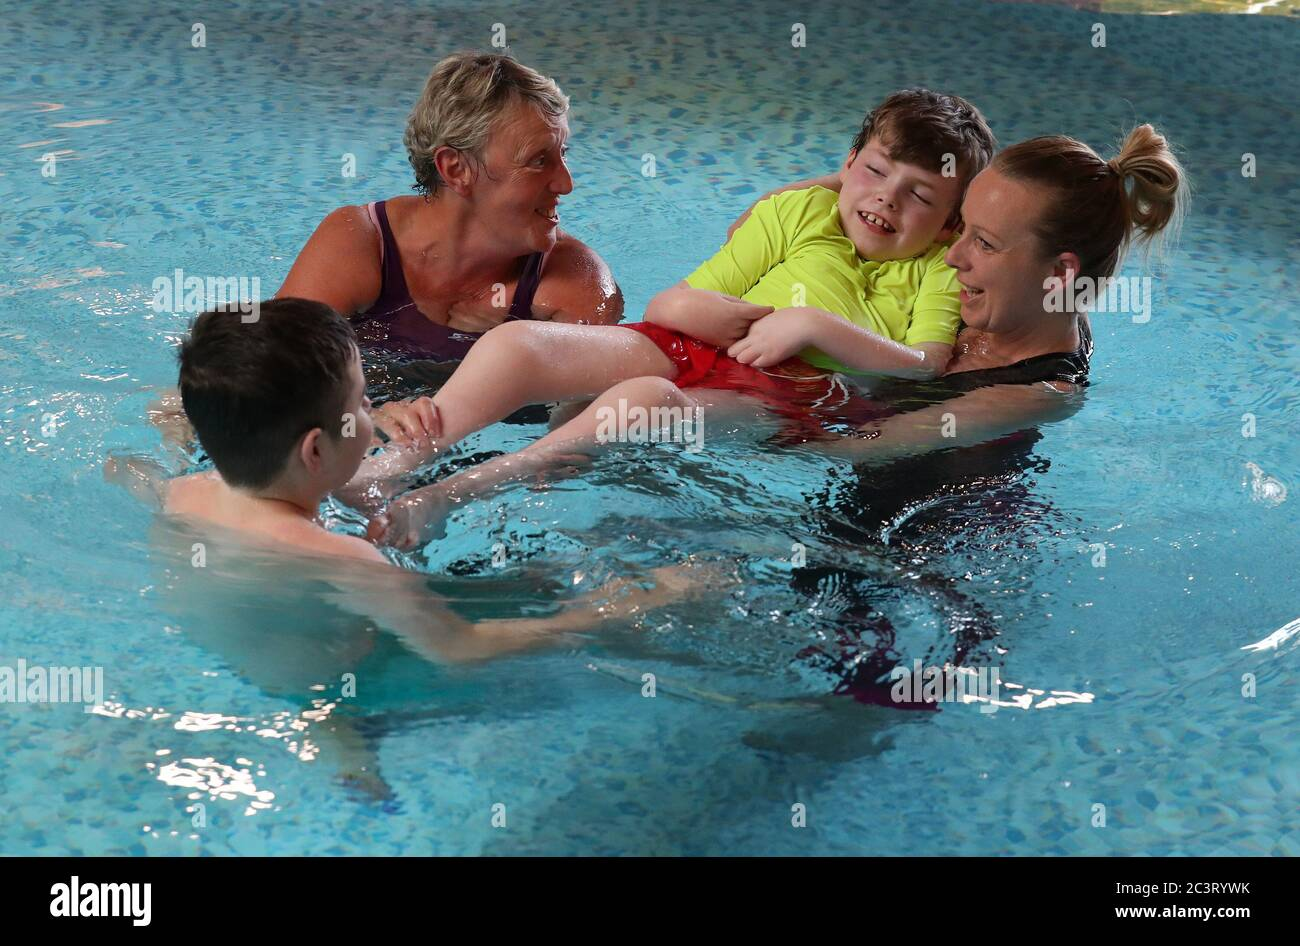 Early Years Practitoner Carole King (left) alongside Nicola Devlin with her sons Sean Kearns and Evan (back to camera) as they take part in Parent-led aquatic therapy in the Hydrotherapy pool at the Craighalbert Centre. Coronavirus adaptations have been installed at the Scottish Centre for Children with Motor Impairments, Craighalbert Centre, Cumbernauld, as Scotland continues gradually lifting coronavirus lockdown measures. Stock Photo